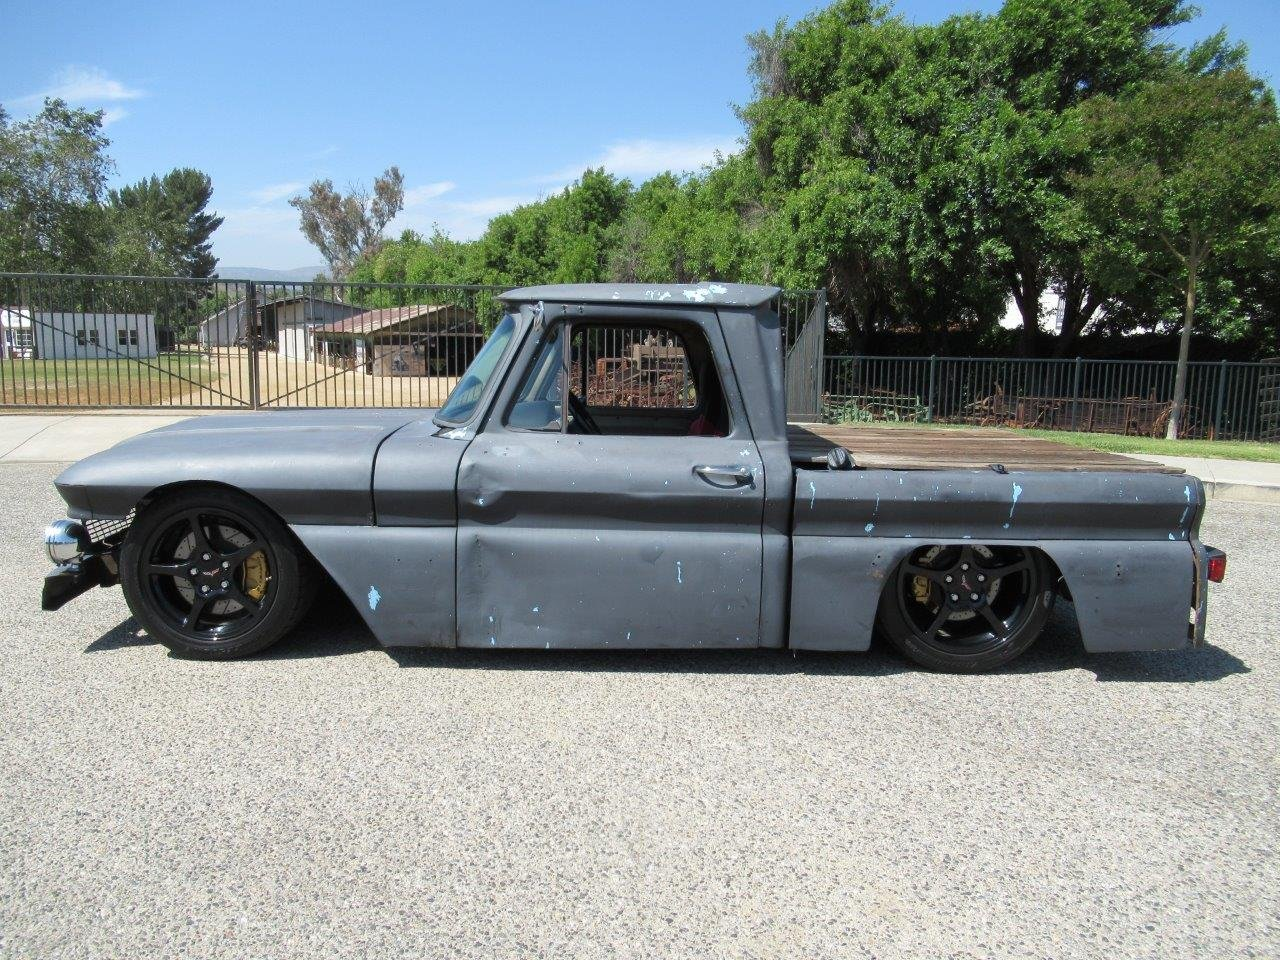 1966 Chevrolet Rat Vette Truck For Sale (picture 1 of 6)